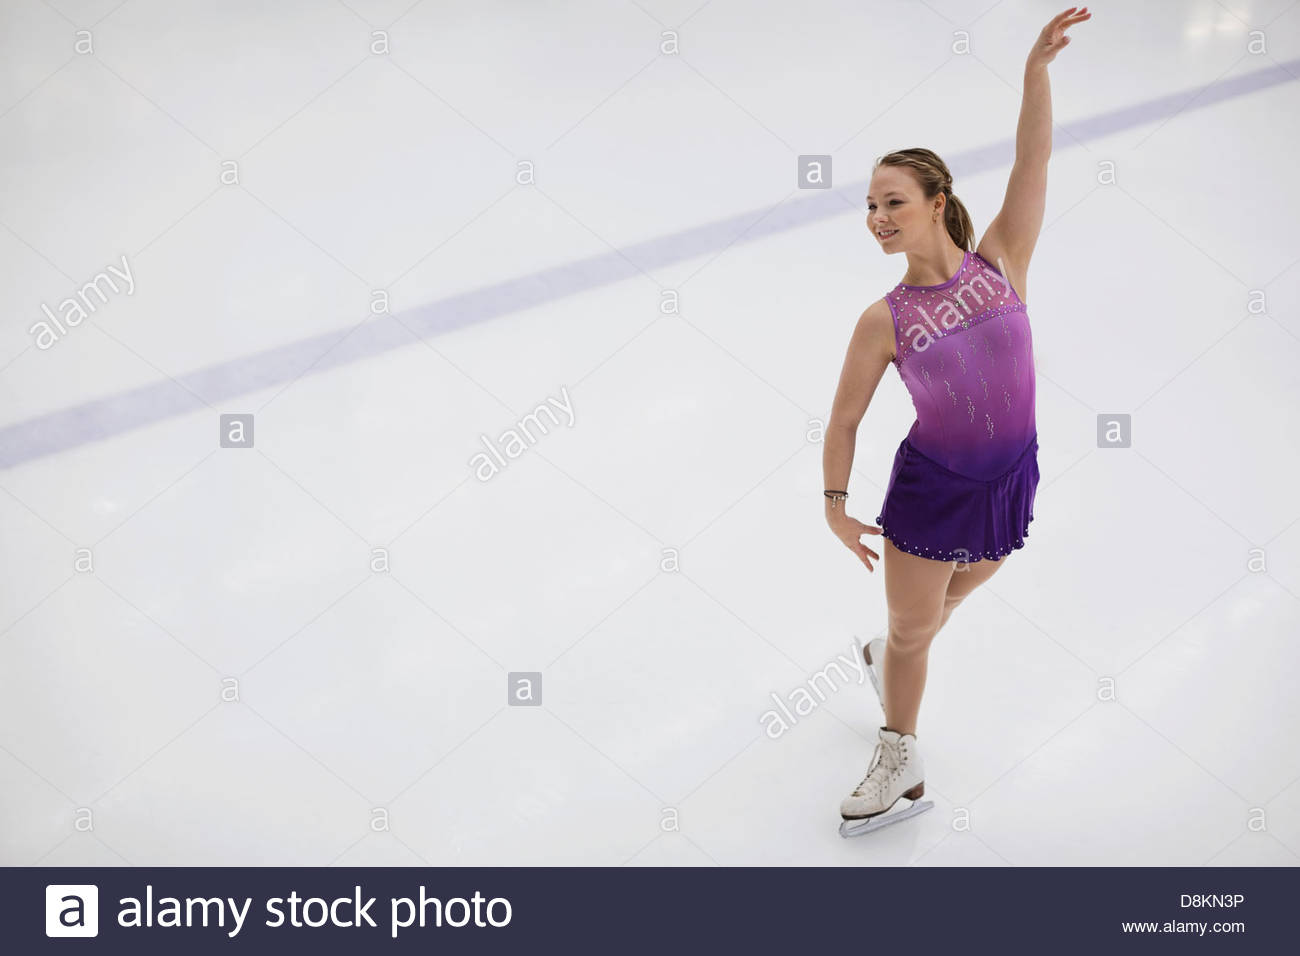 Female figure skater performing routine in skating rink - Stock Image